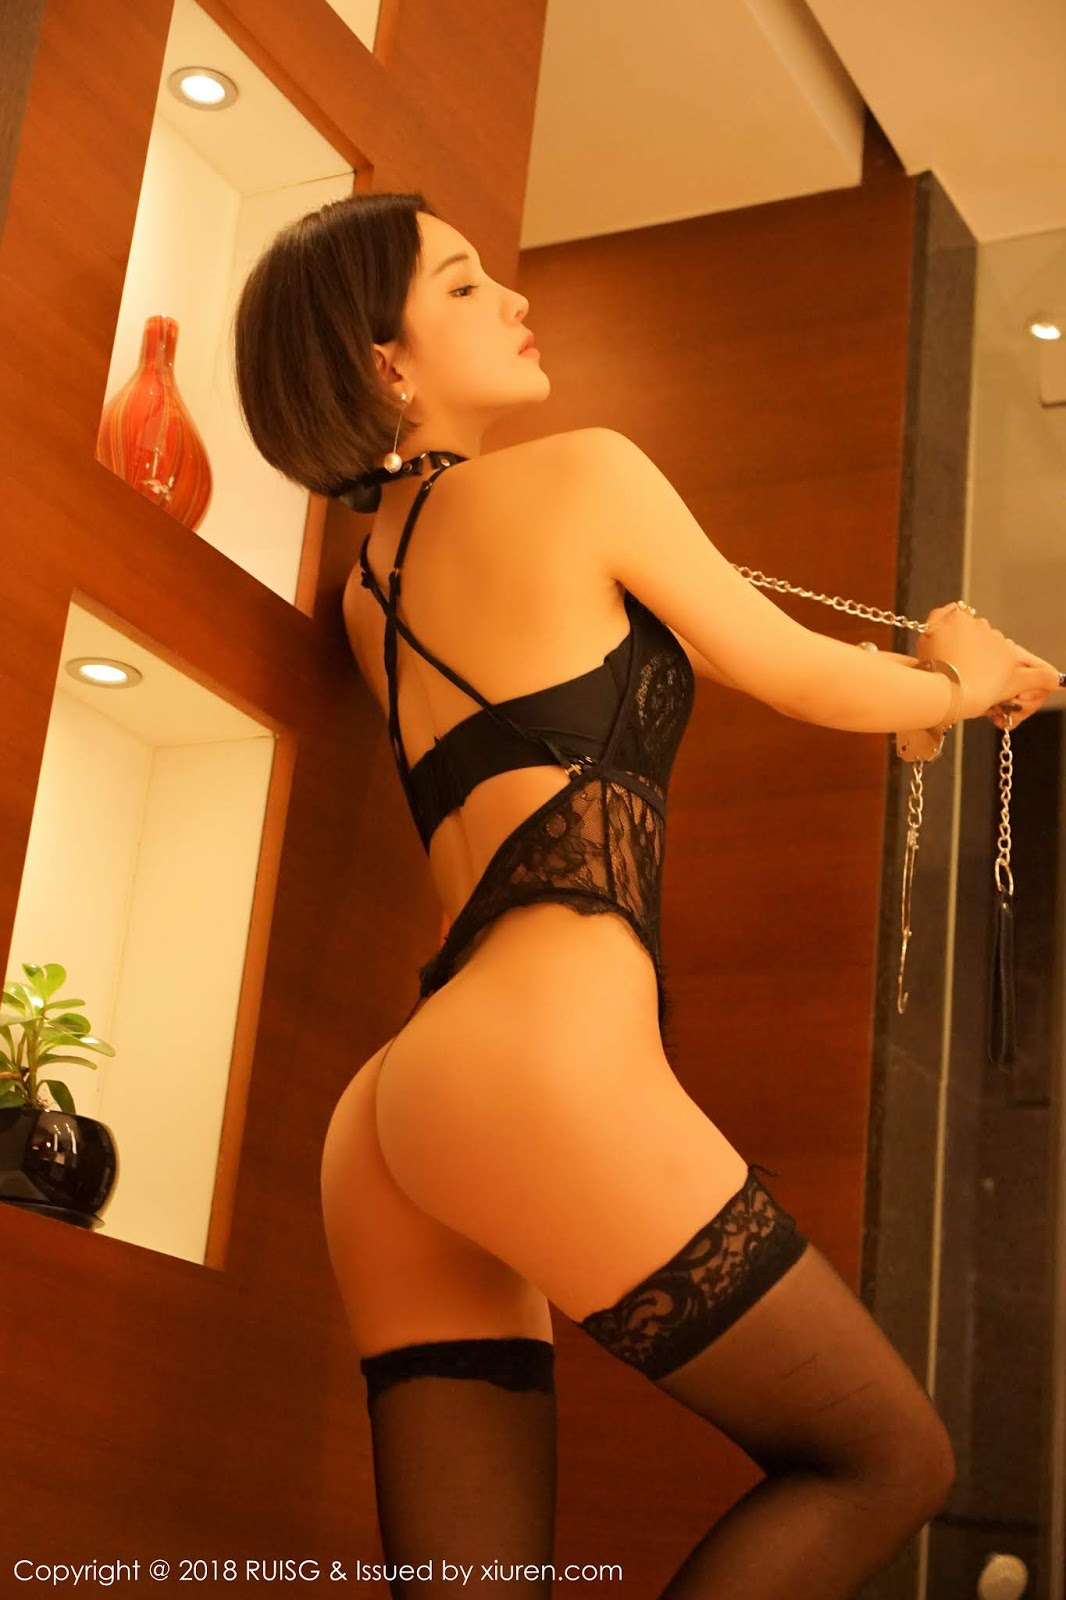 Elite tribeca escorts in manhattan nyc fame elites escorts